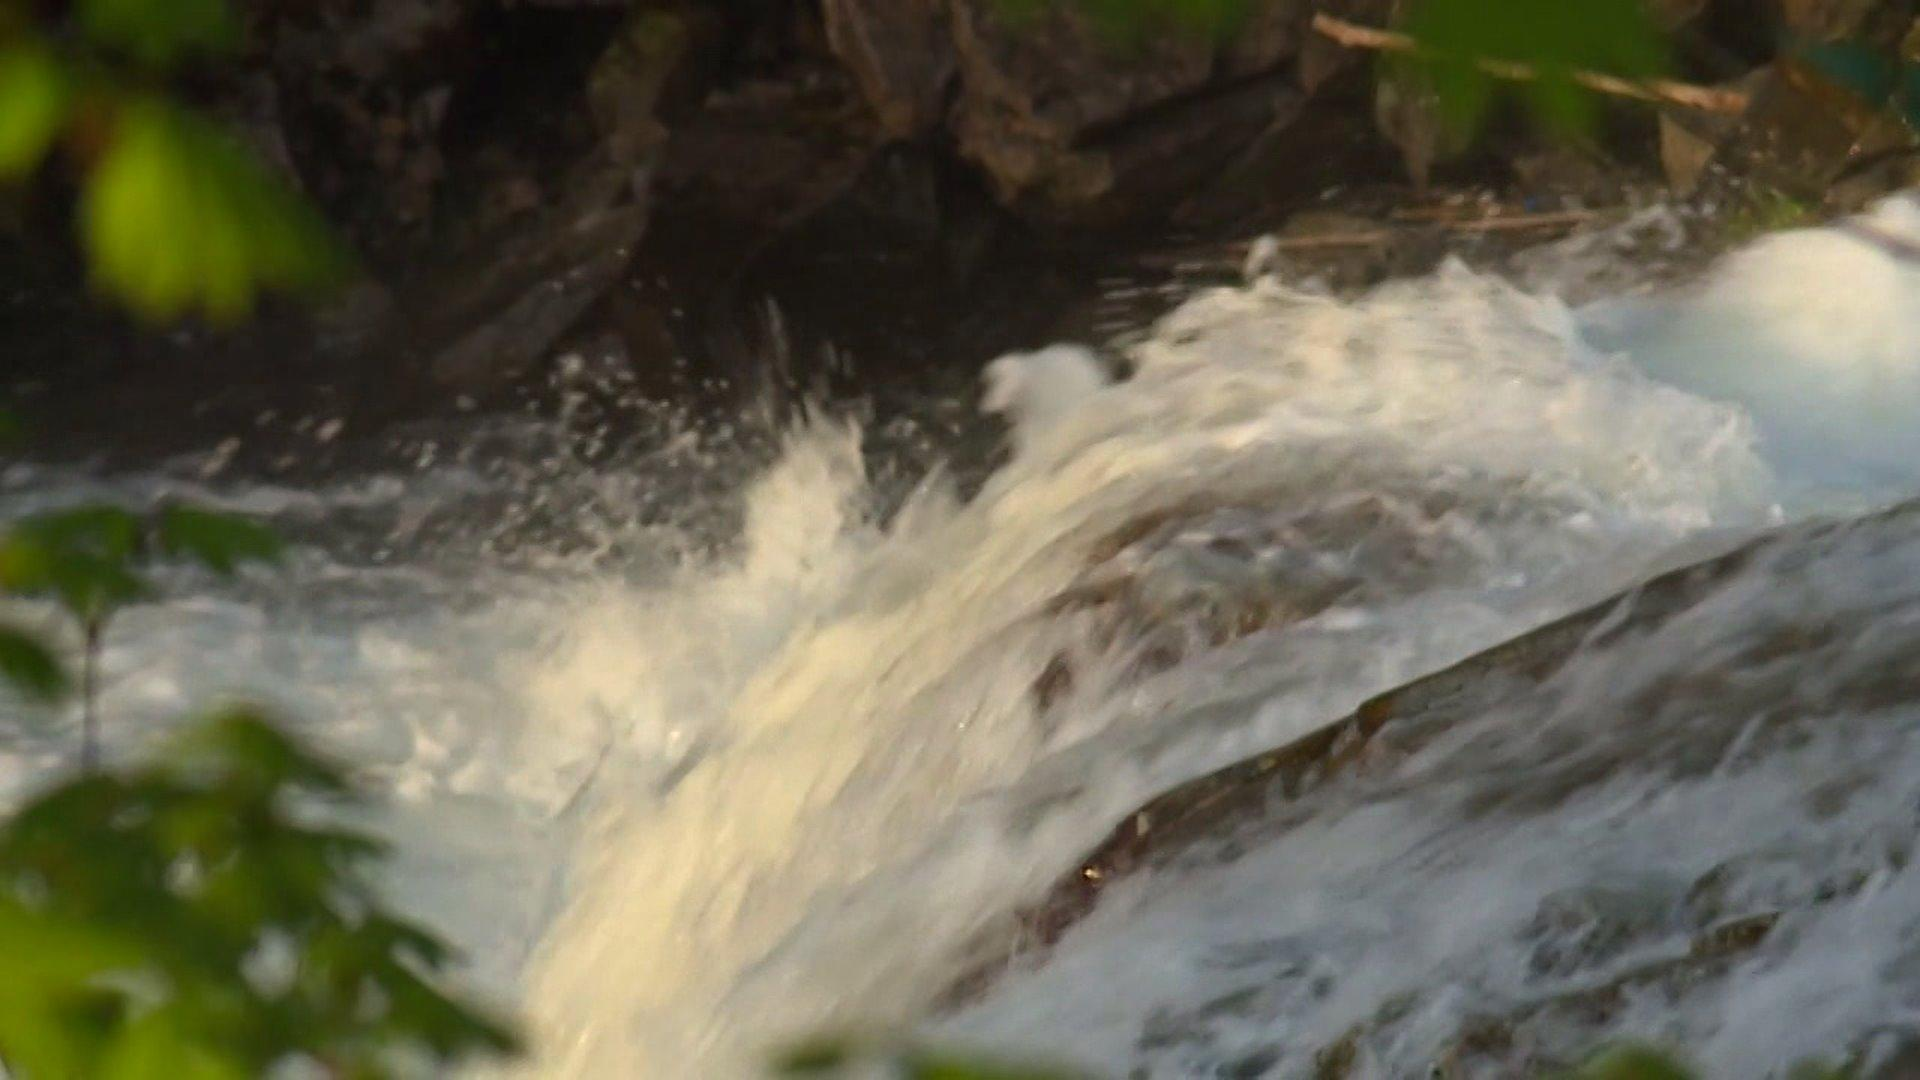 Teenage Boy Presumed Drowned After Going Over Falls in Washington State River